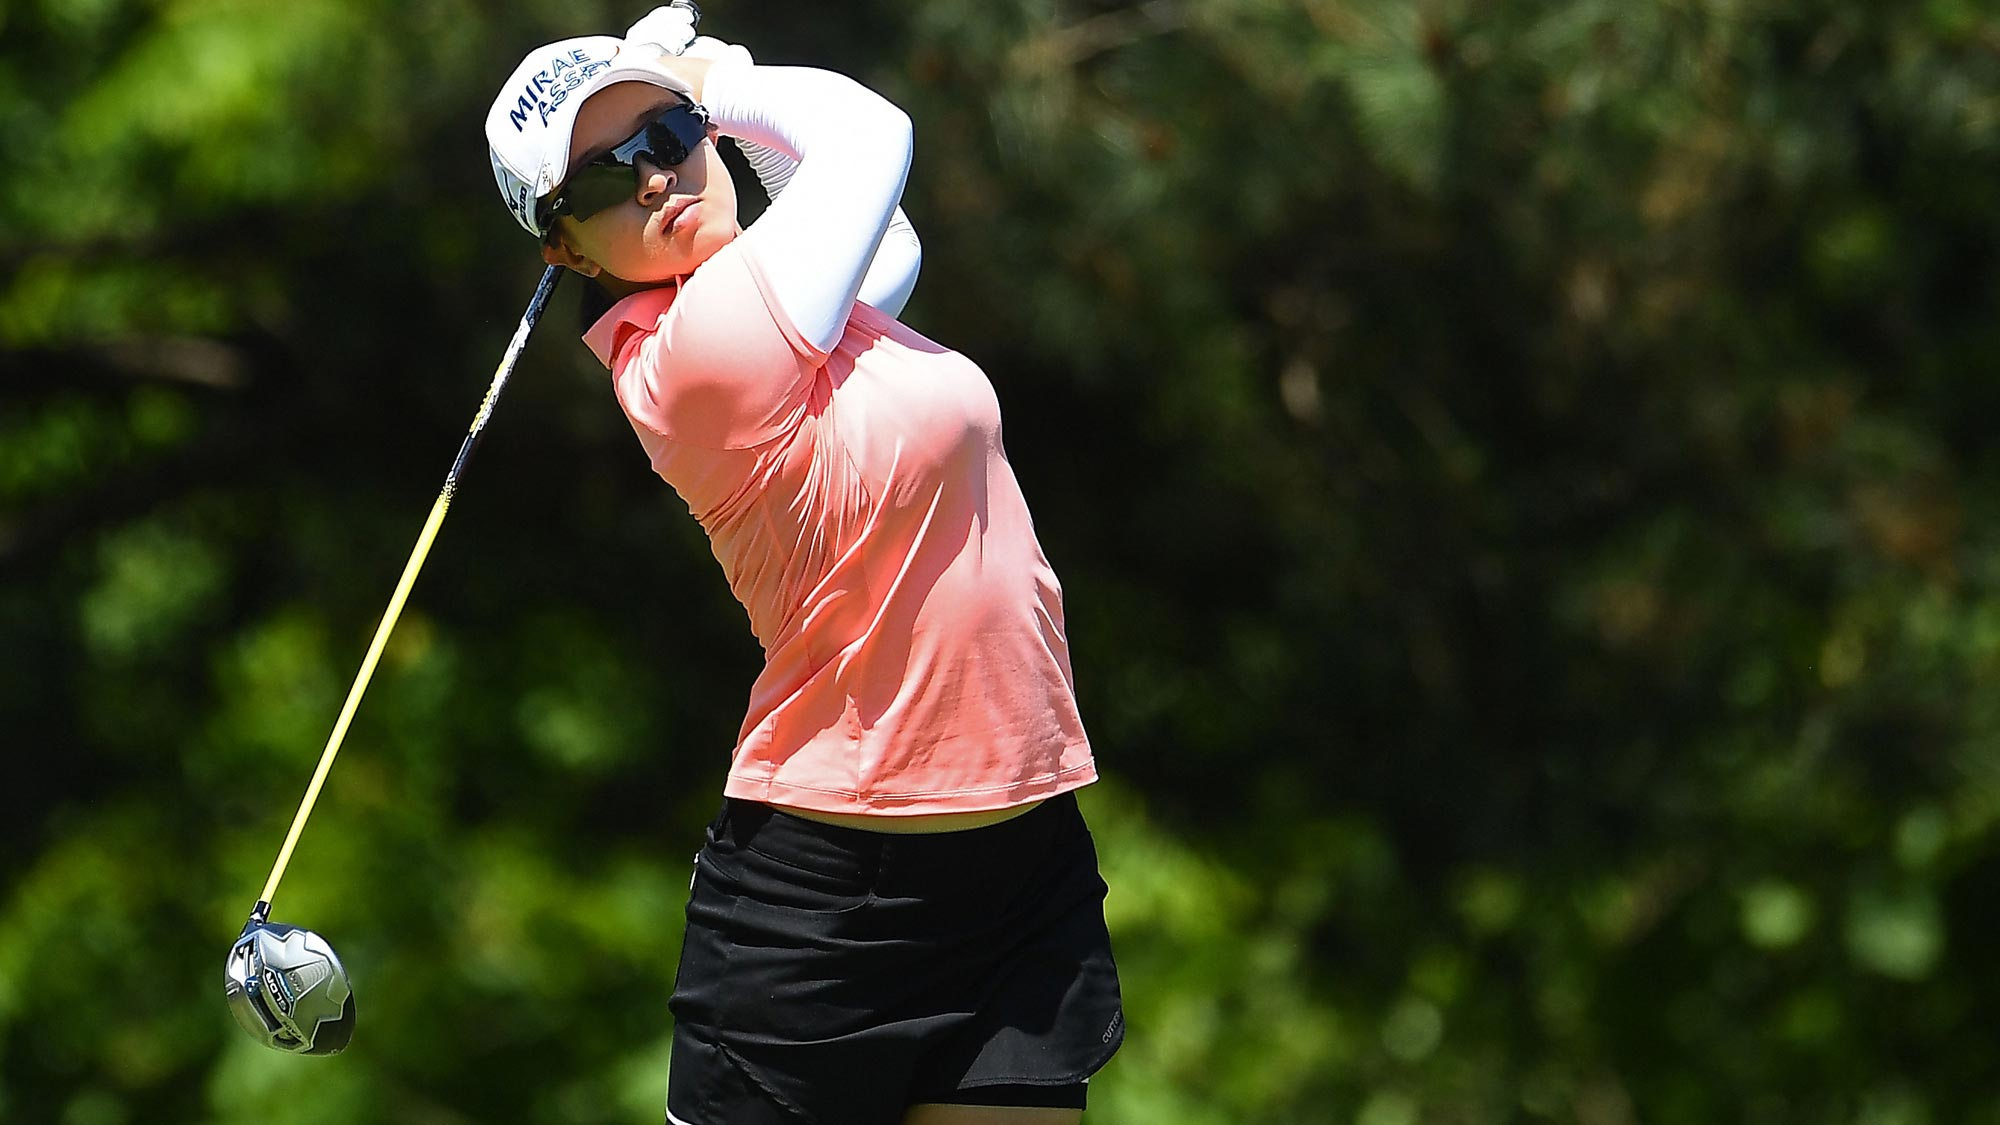 Sei Young Kim of Korea hits her tee shot on the second hole during the second round of the KPMG Women's PGA Championship